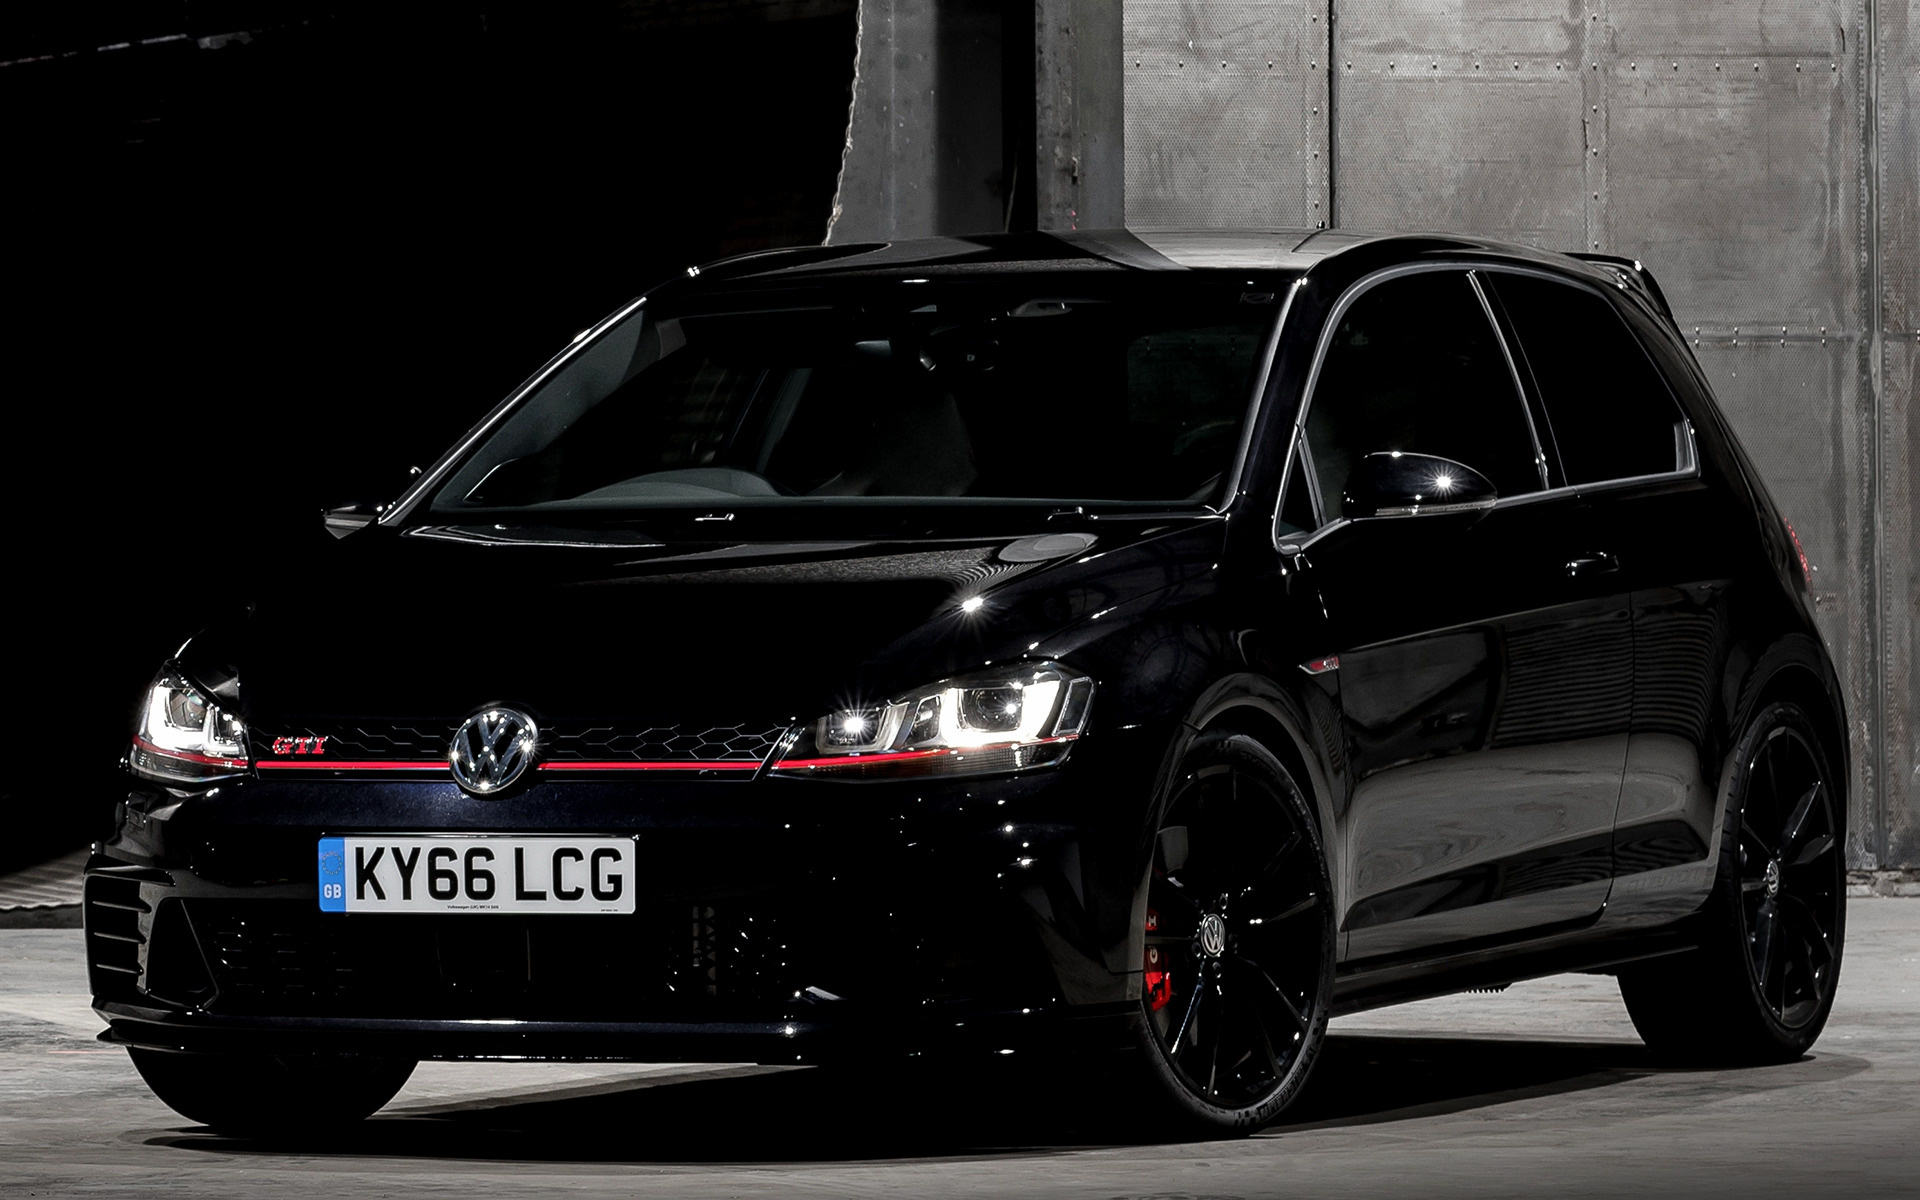 Volkswagen Golf Gti Clubsport Edition 40 3 Door 2016 Uk